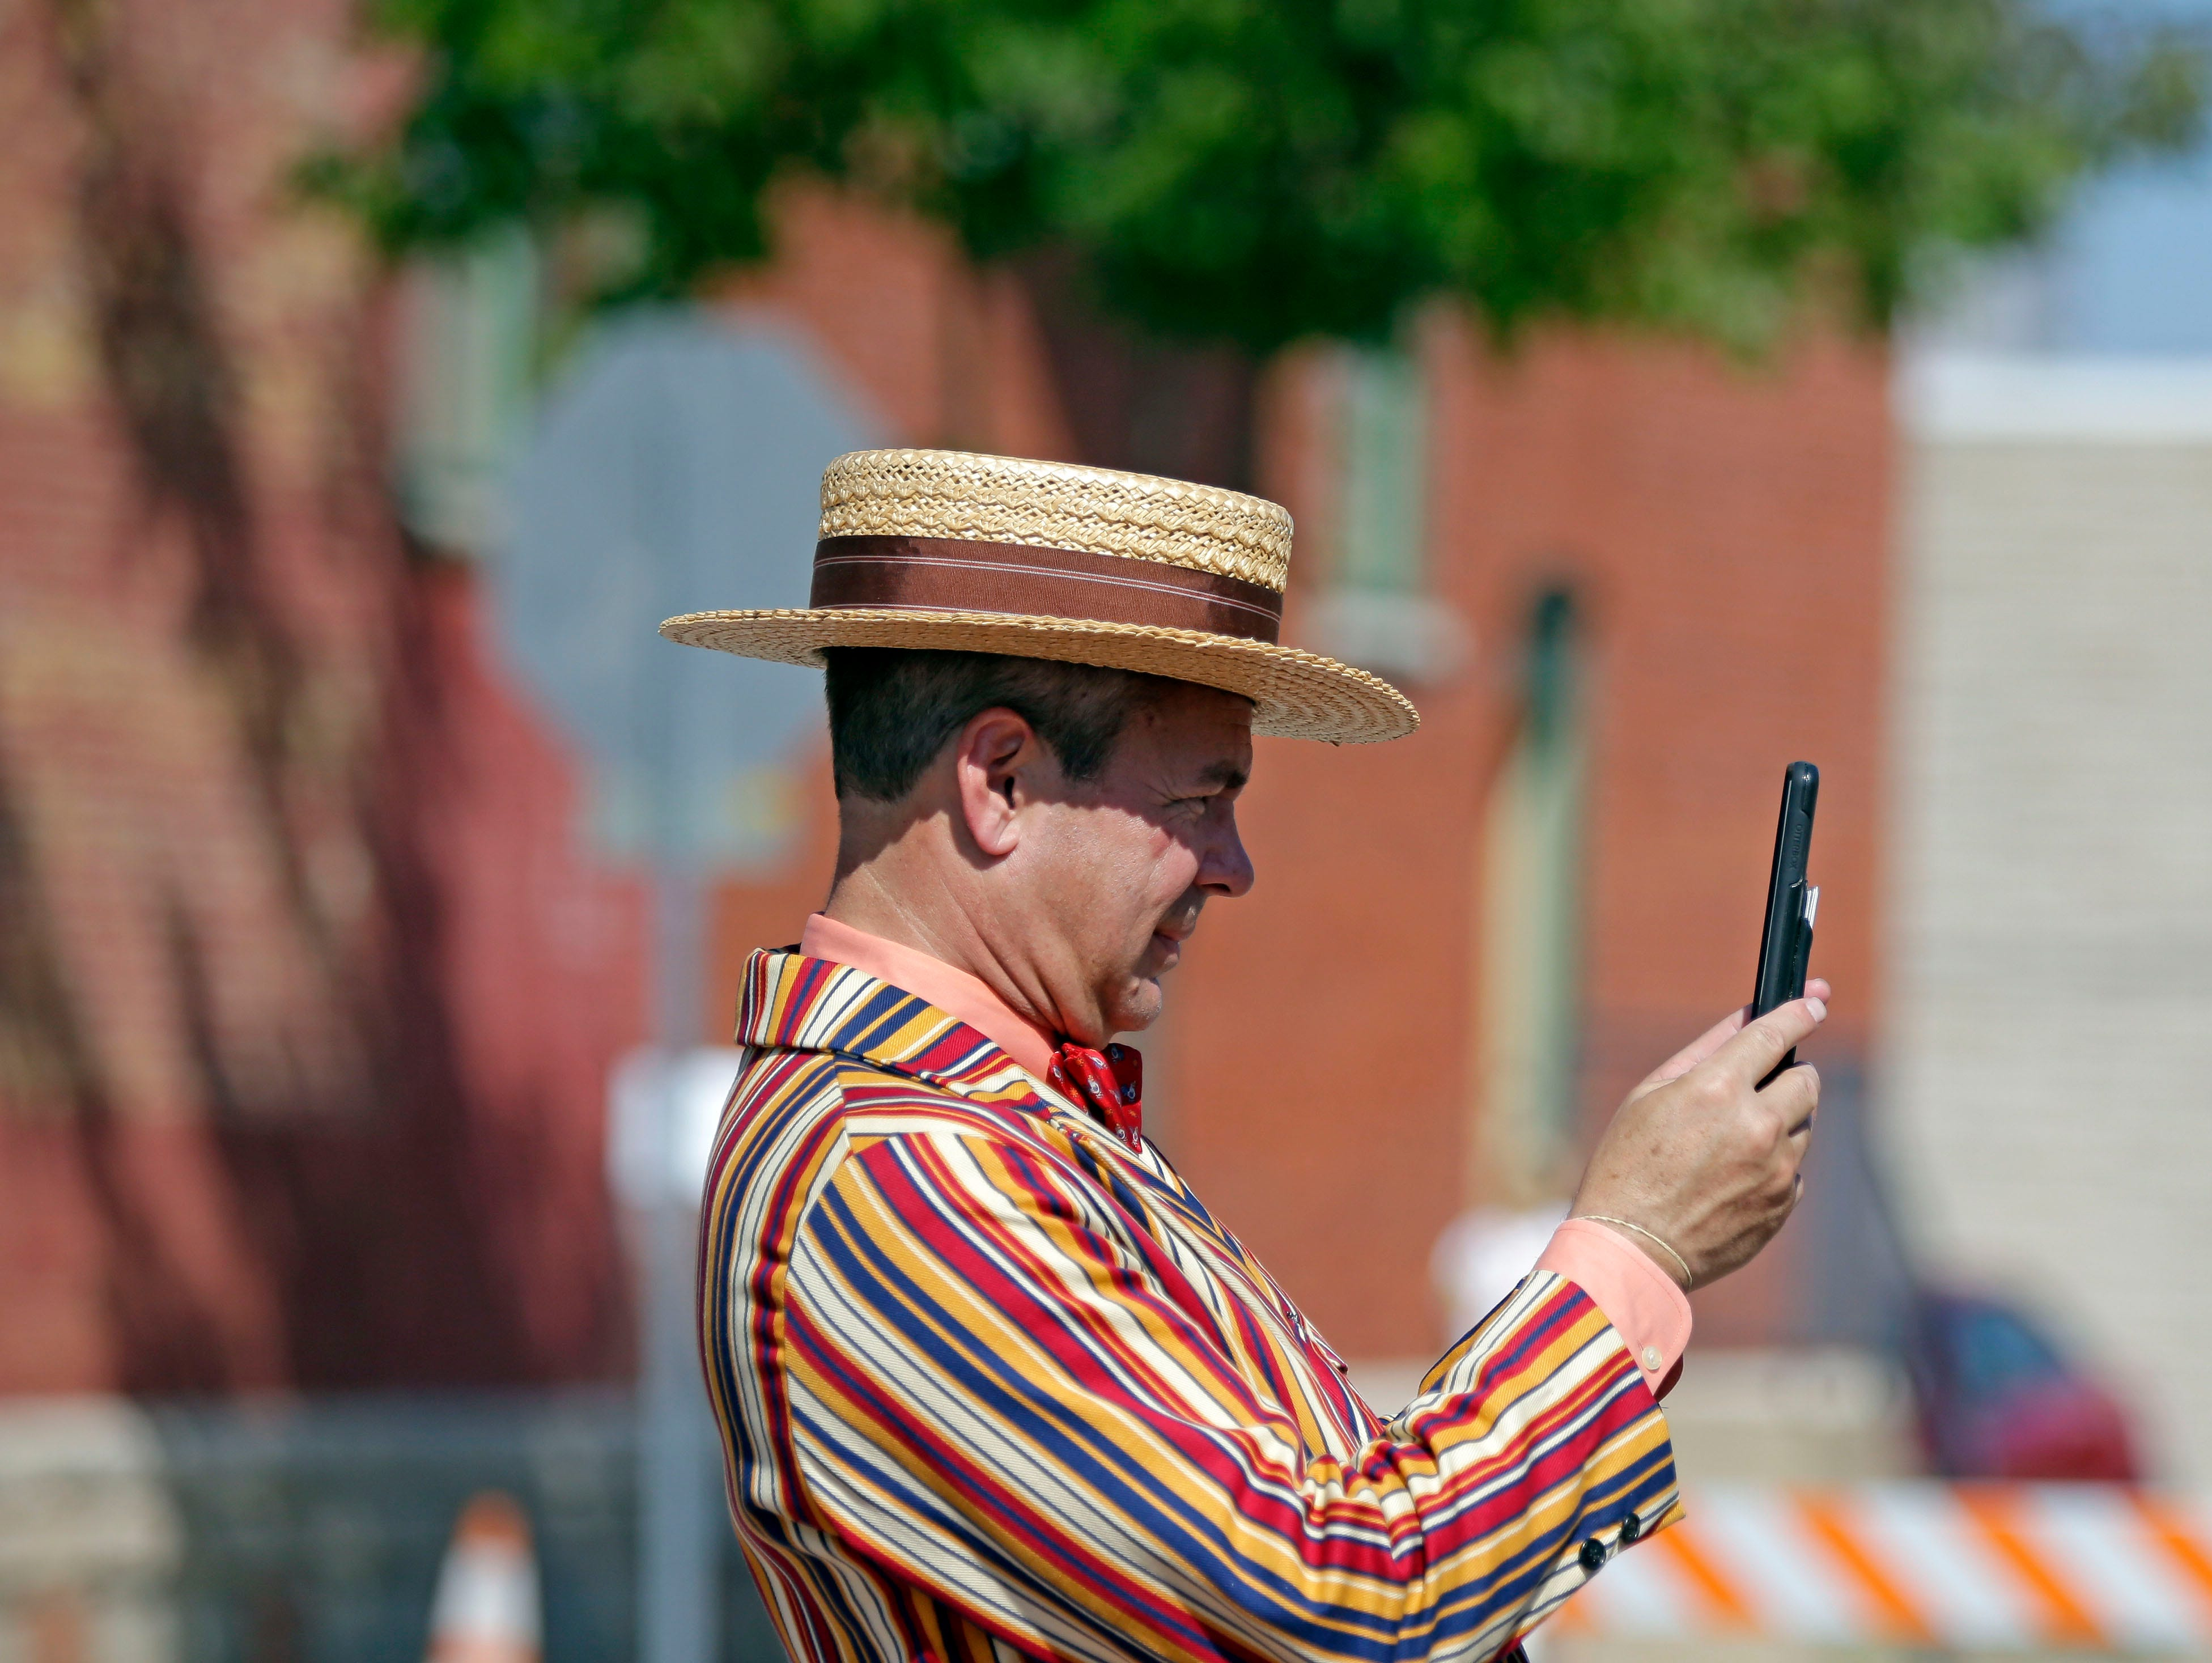 Tim Dietzen is dressed for the period as he records the parade during Horse and Buggy Days Saturday, September 15, 2018, in Weyauwega, Wis.Ron Page/USA TODAY NETWORK-Wisconsin